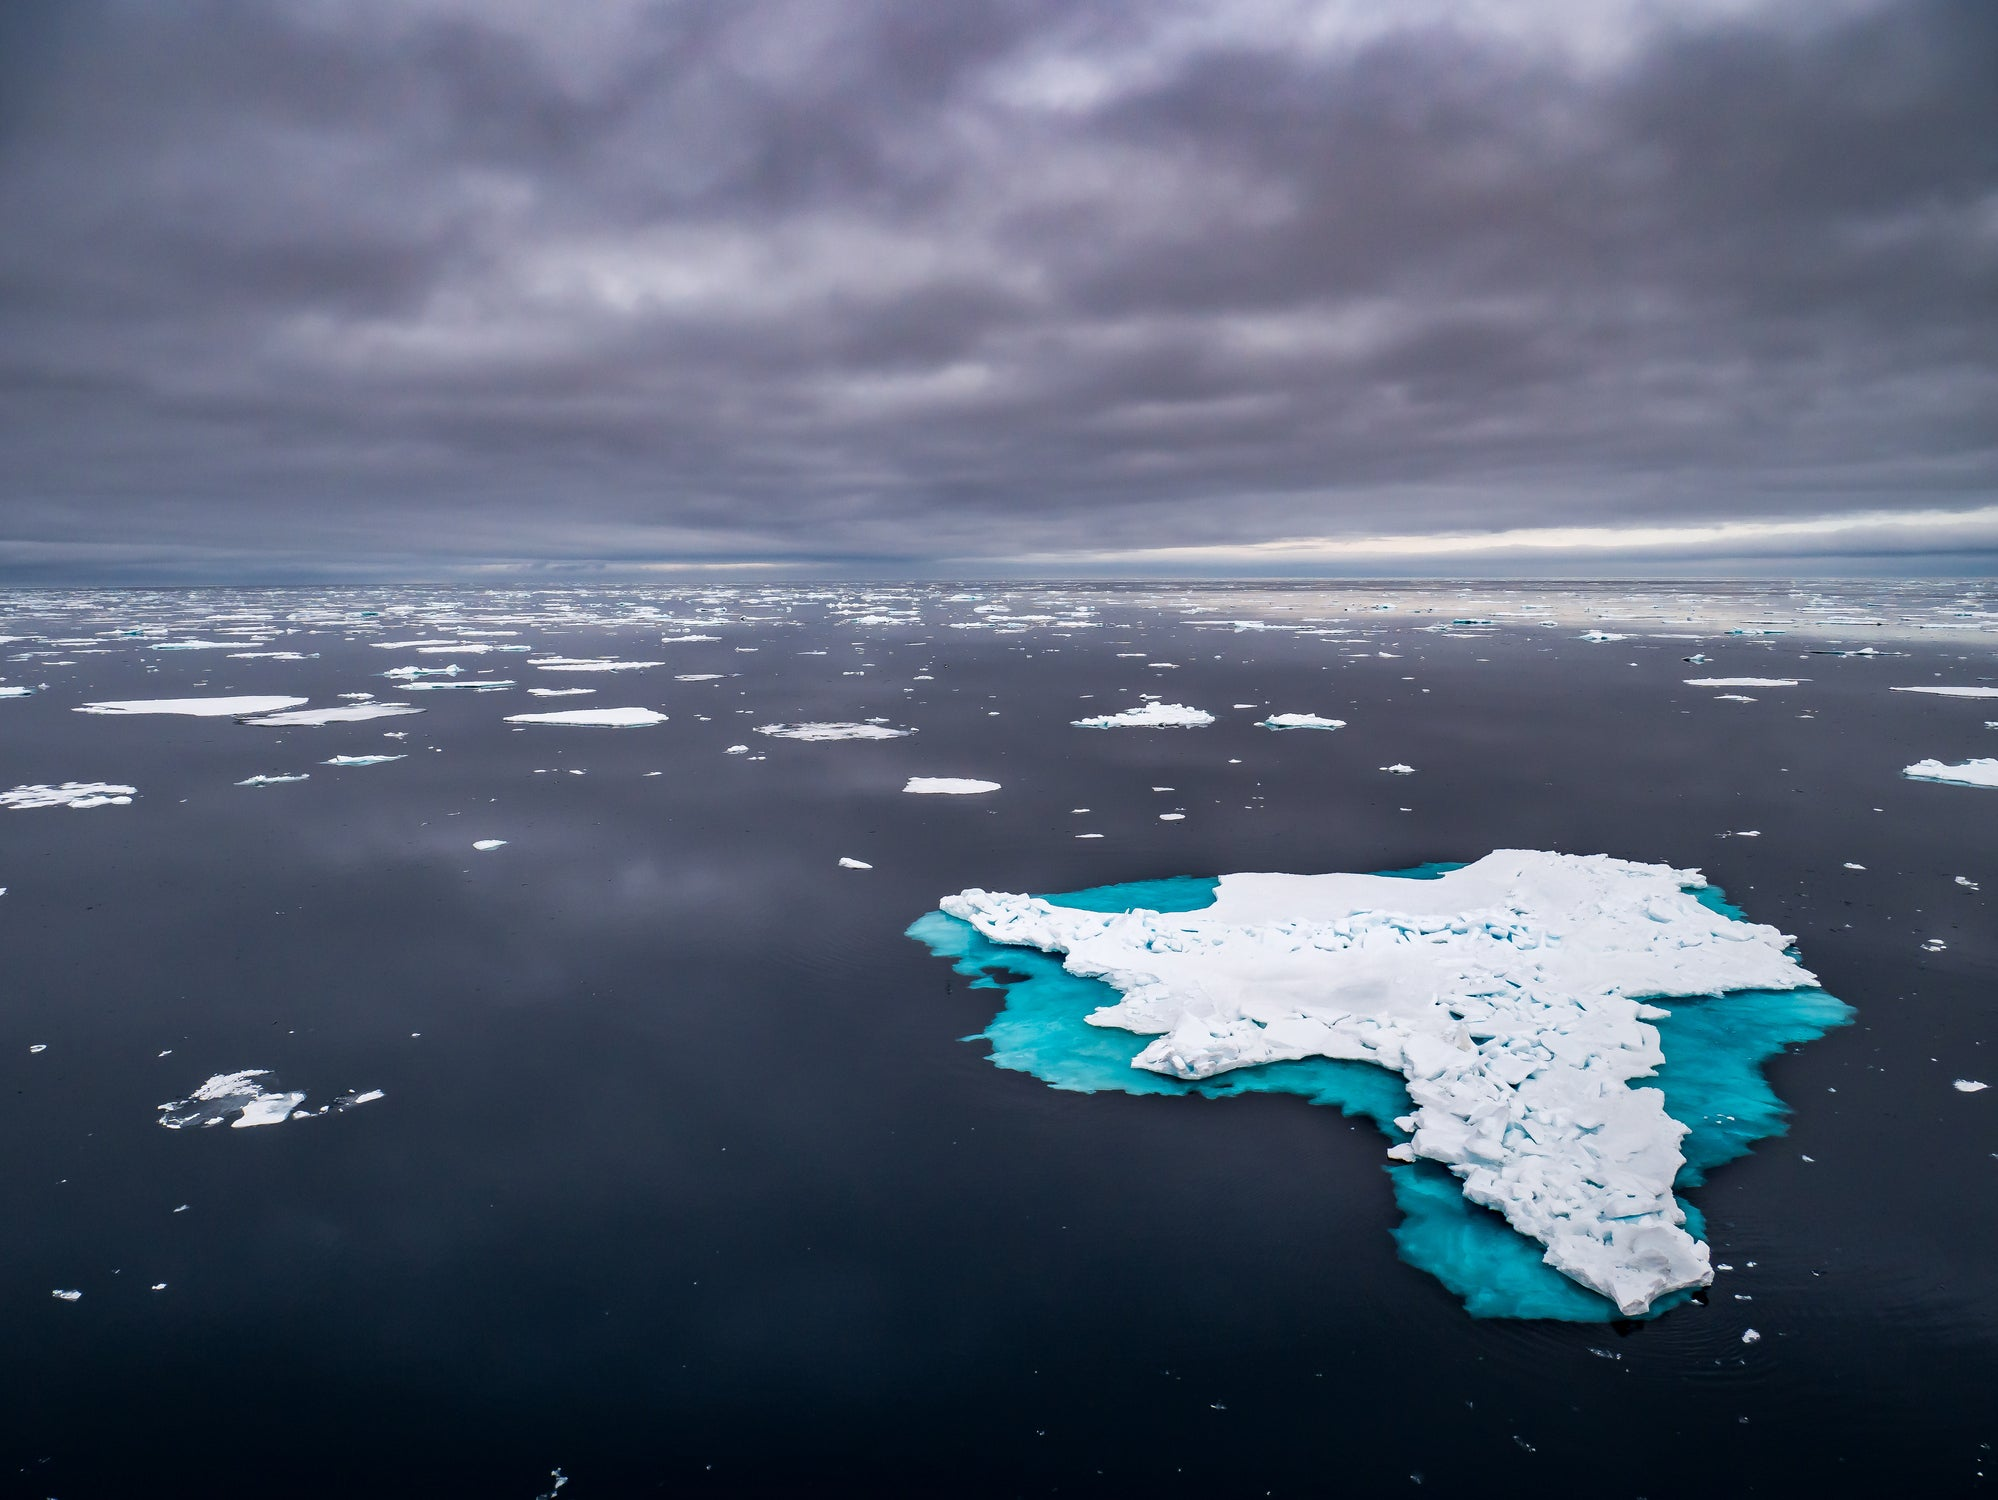 Nasa warns temperatures in Europe could plunge if Arctic warming causes major ocean current to reverse